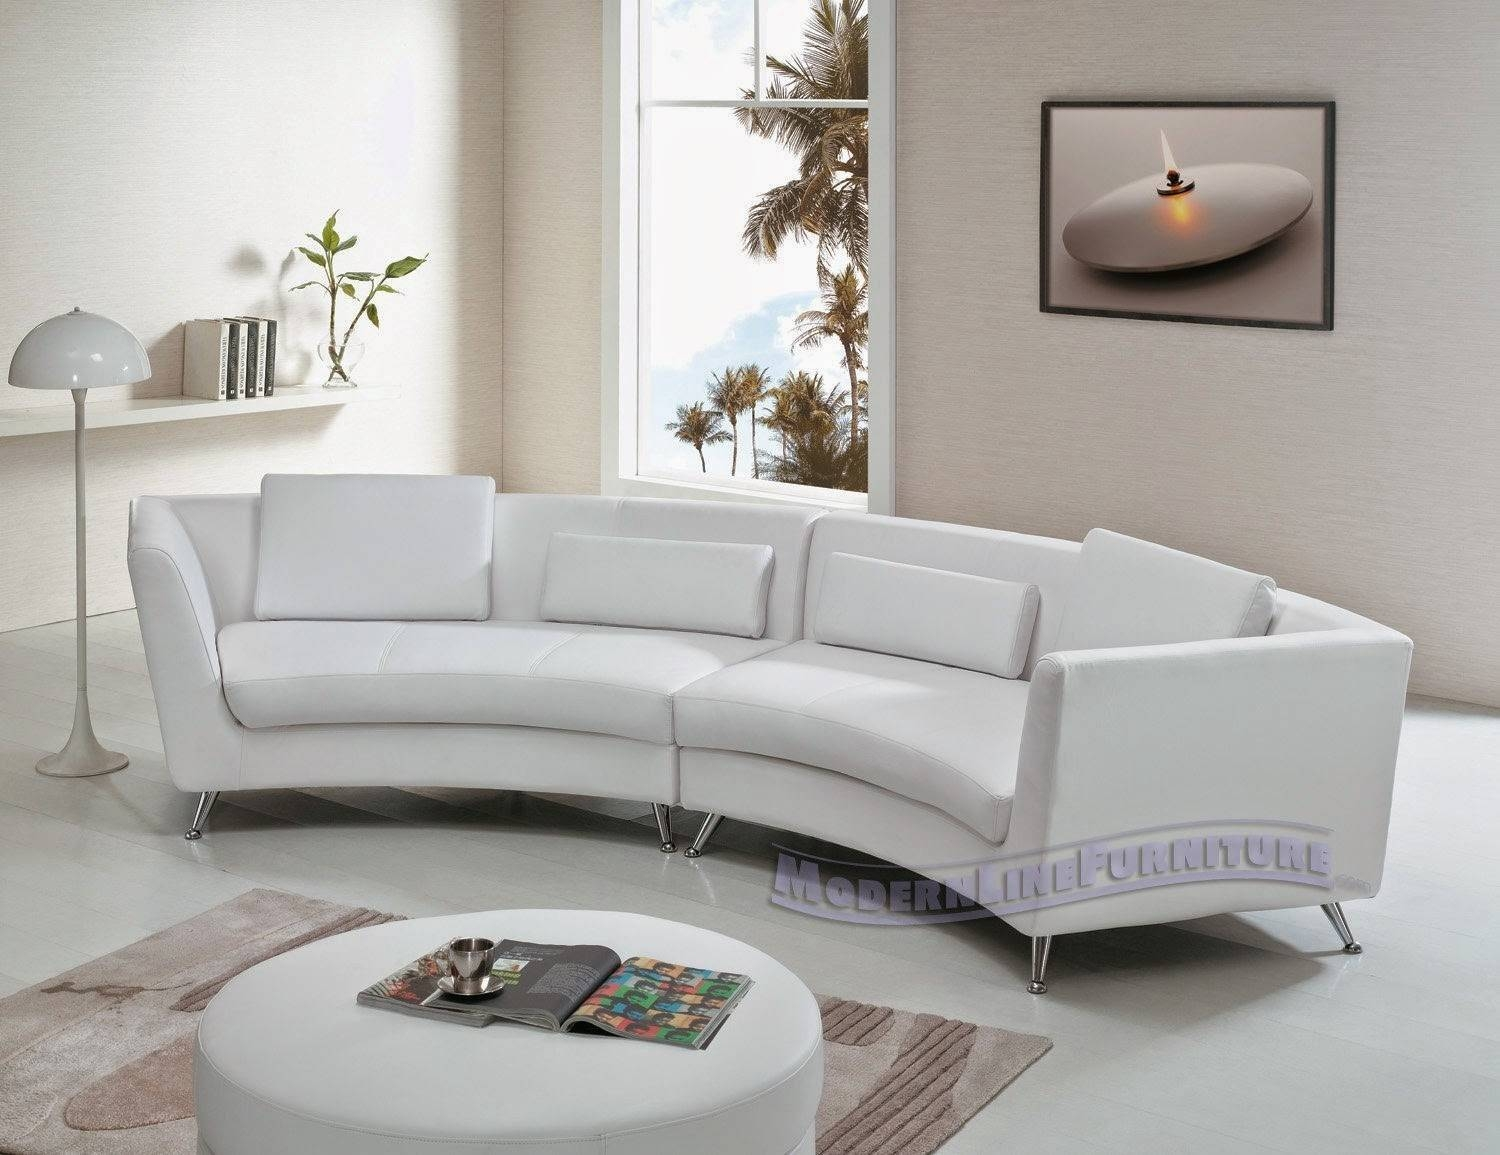 Sofa Curved: Curved Sofa For Bay Window within Bay Window Sofas (Image 13 of 15)